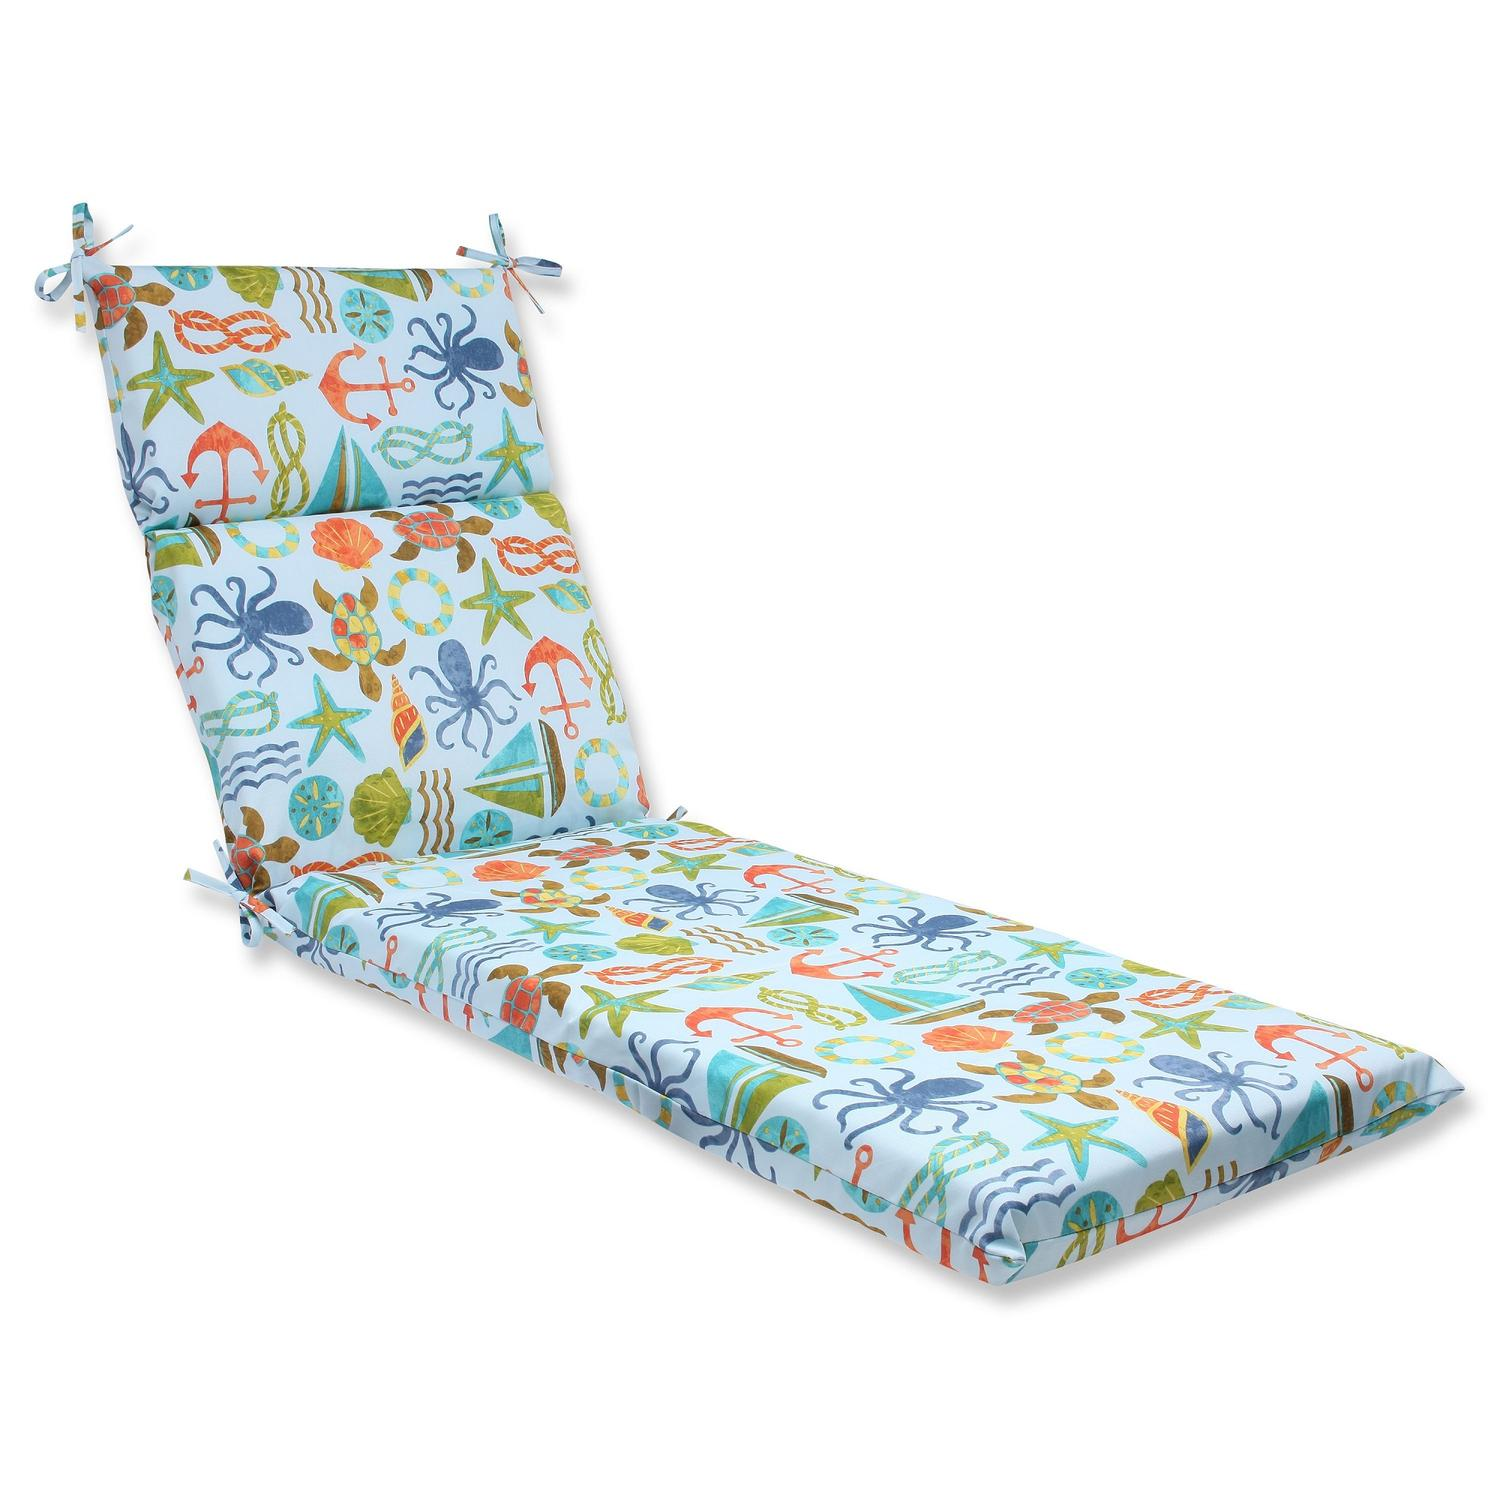 "72.5"" Blue Sea Themed UV-resistant Outdoor Patio Chaise Lounge Cushion with Ties"